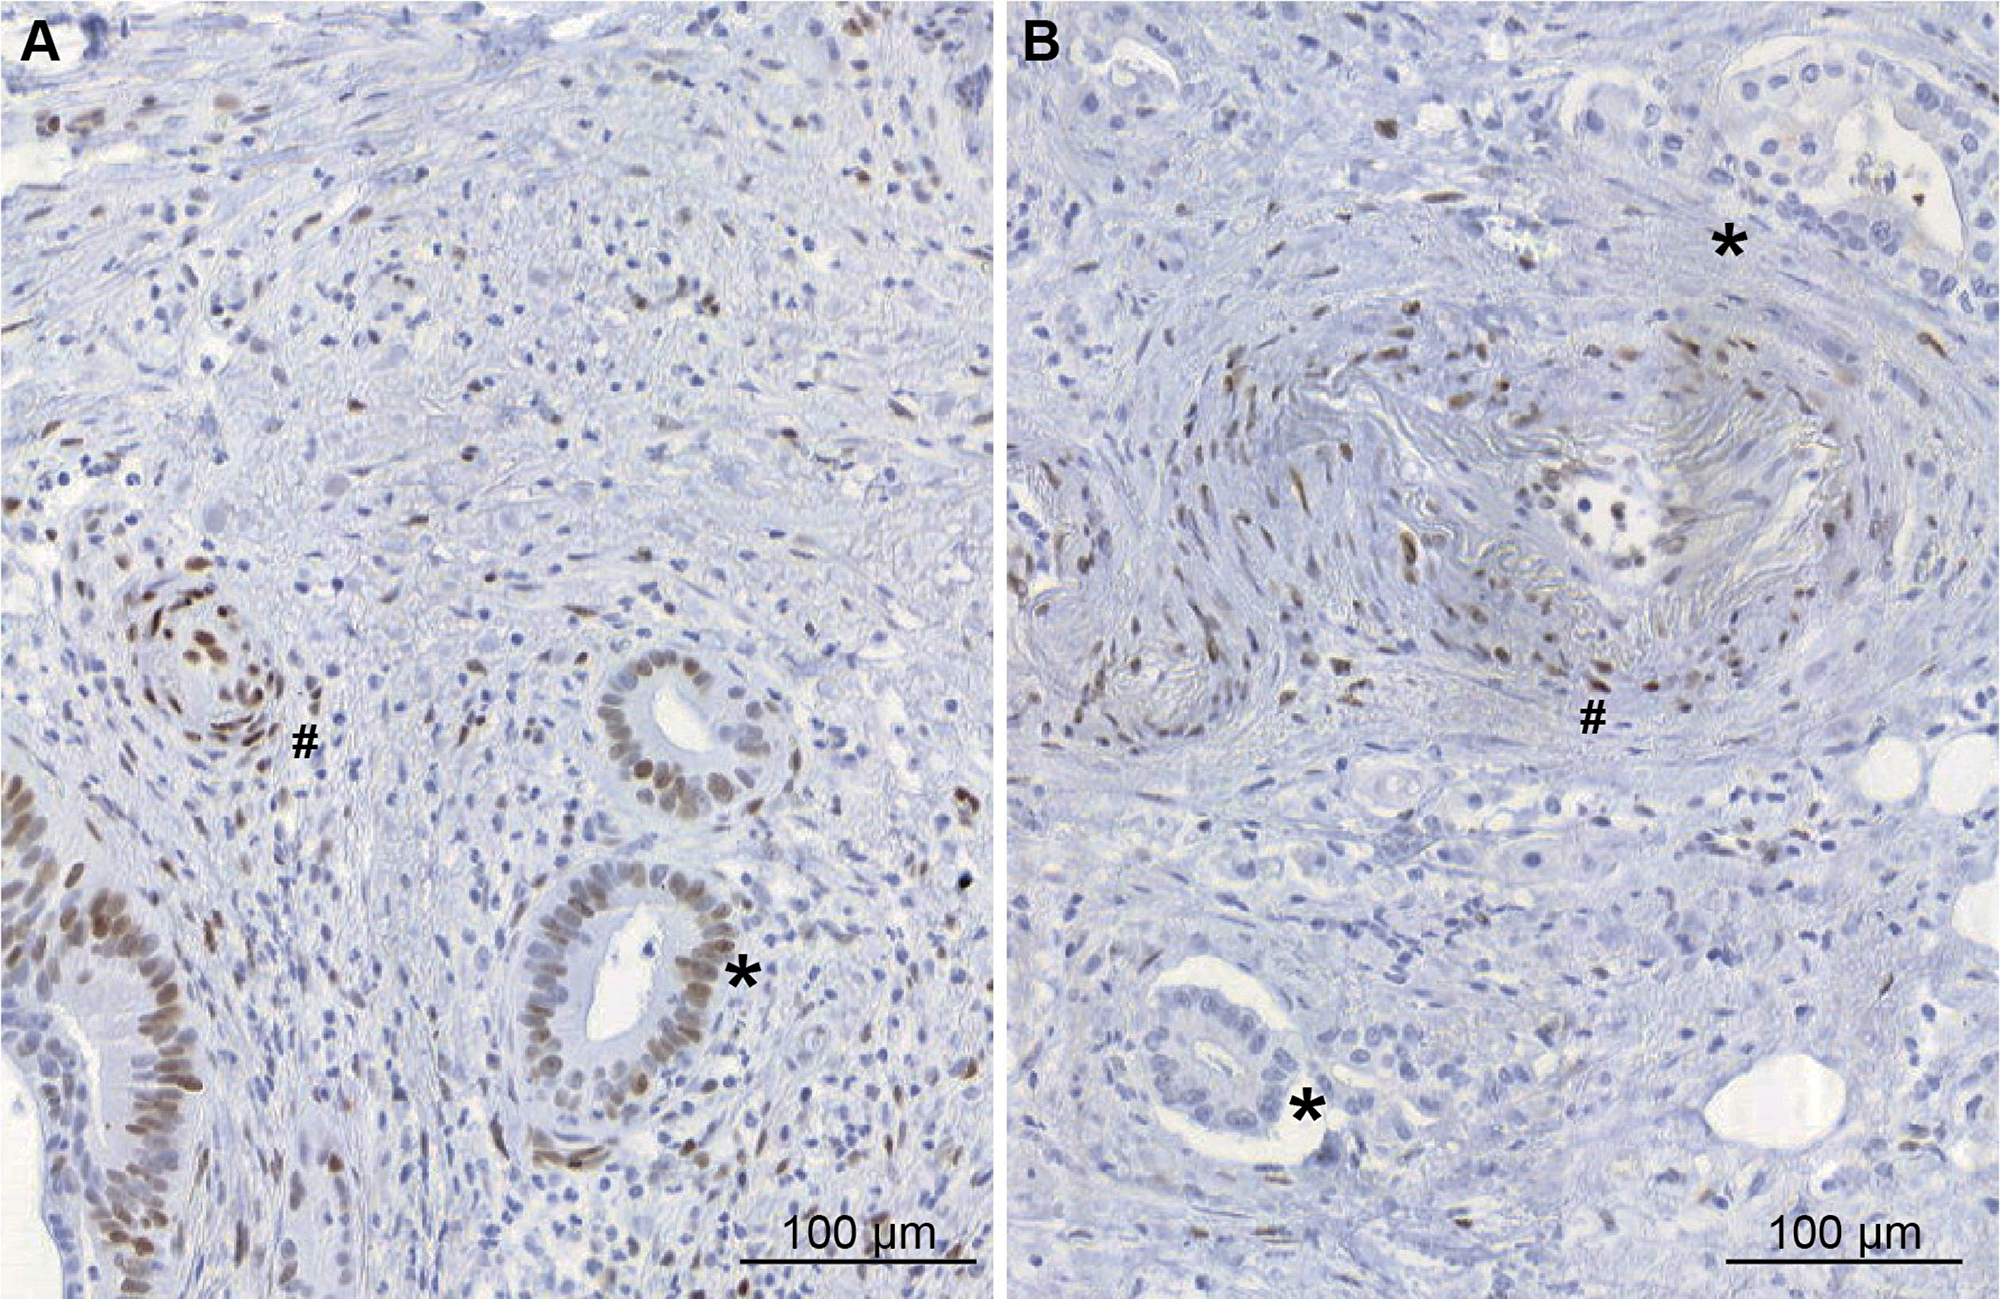 Immunohistochemical study of pSTAT3 expression in pancreatic adenocarcinoma tissues